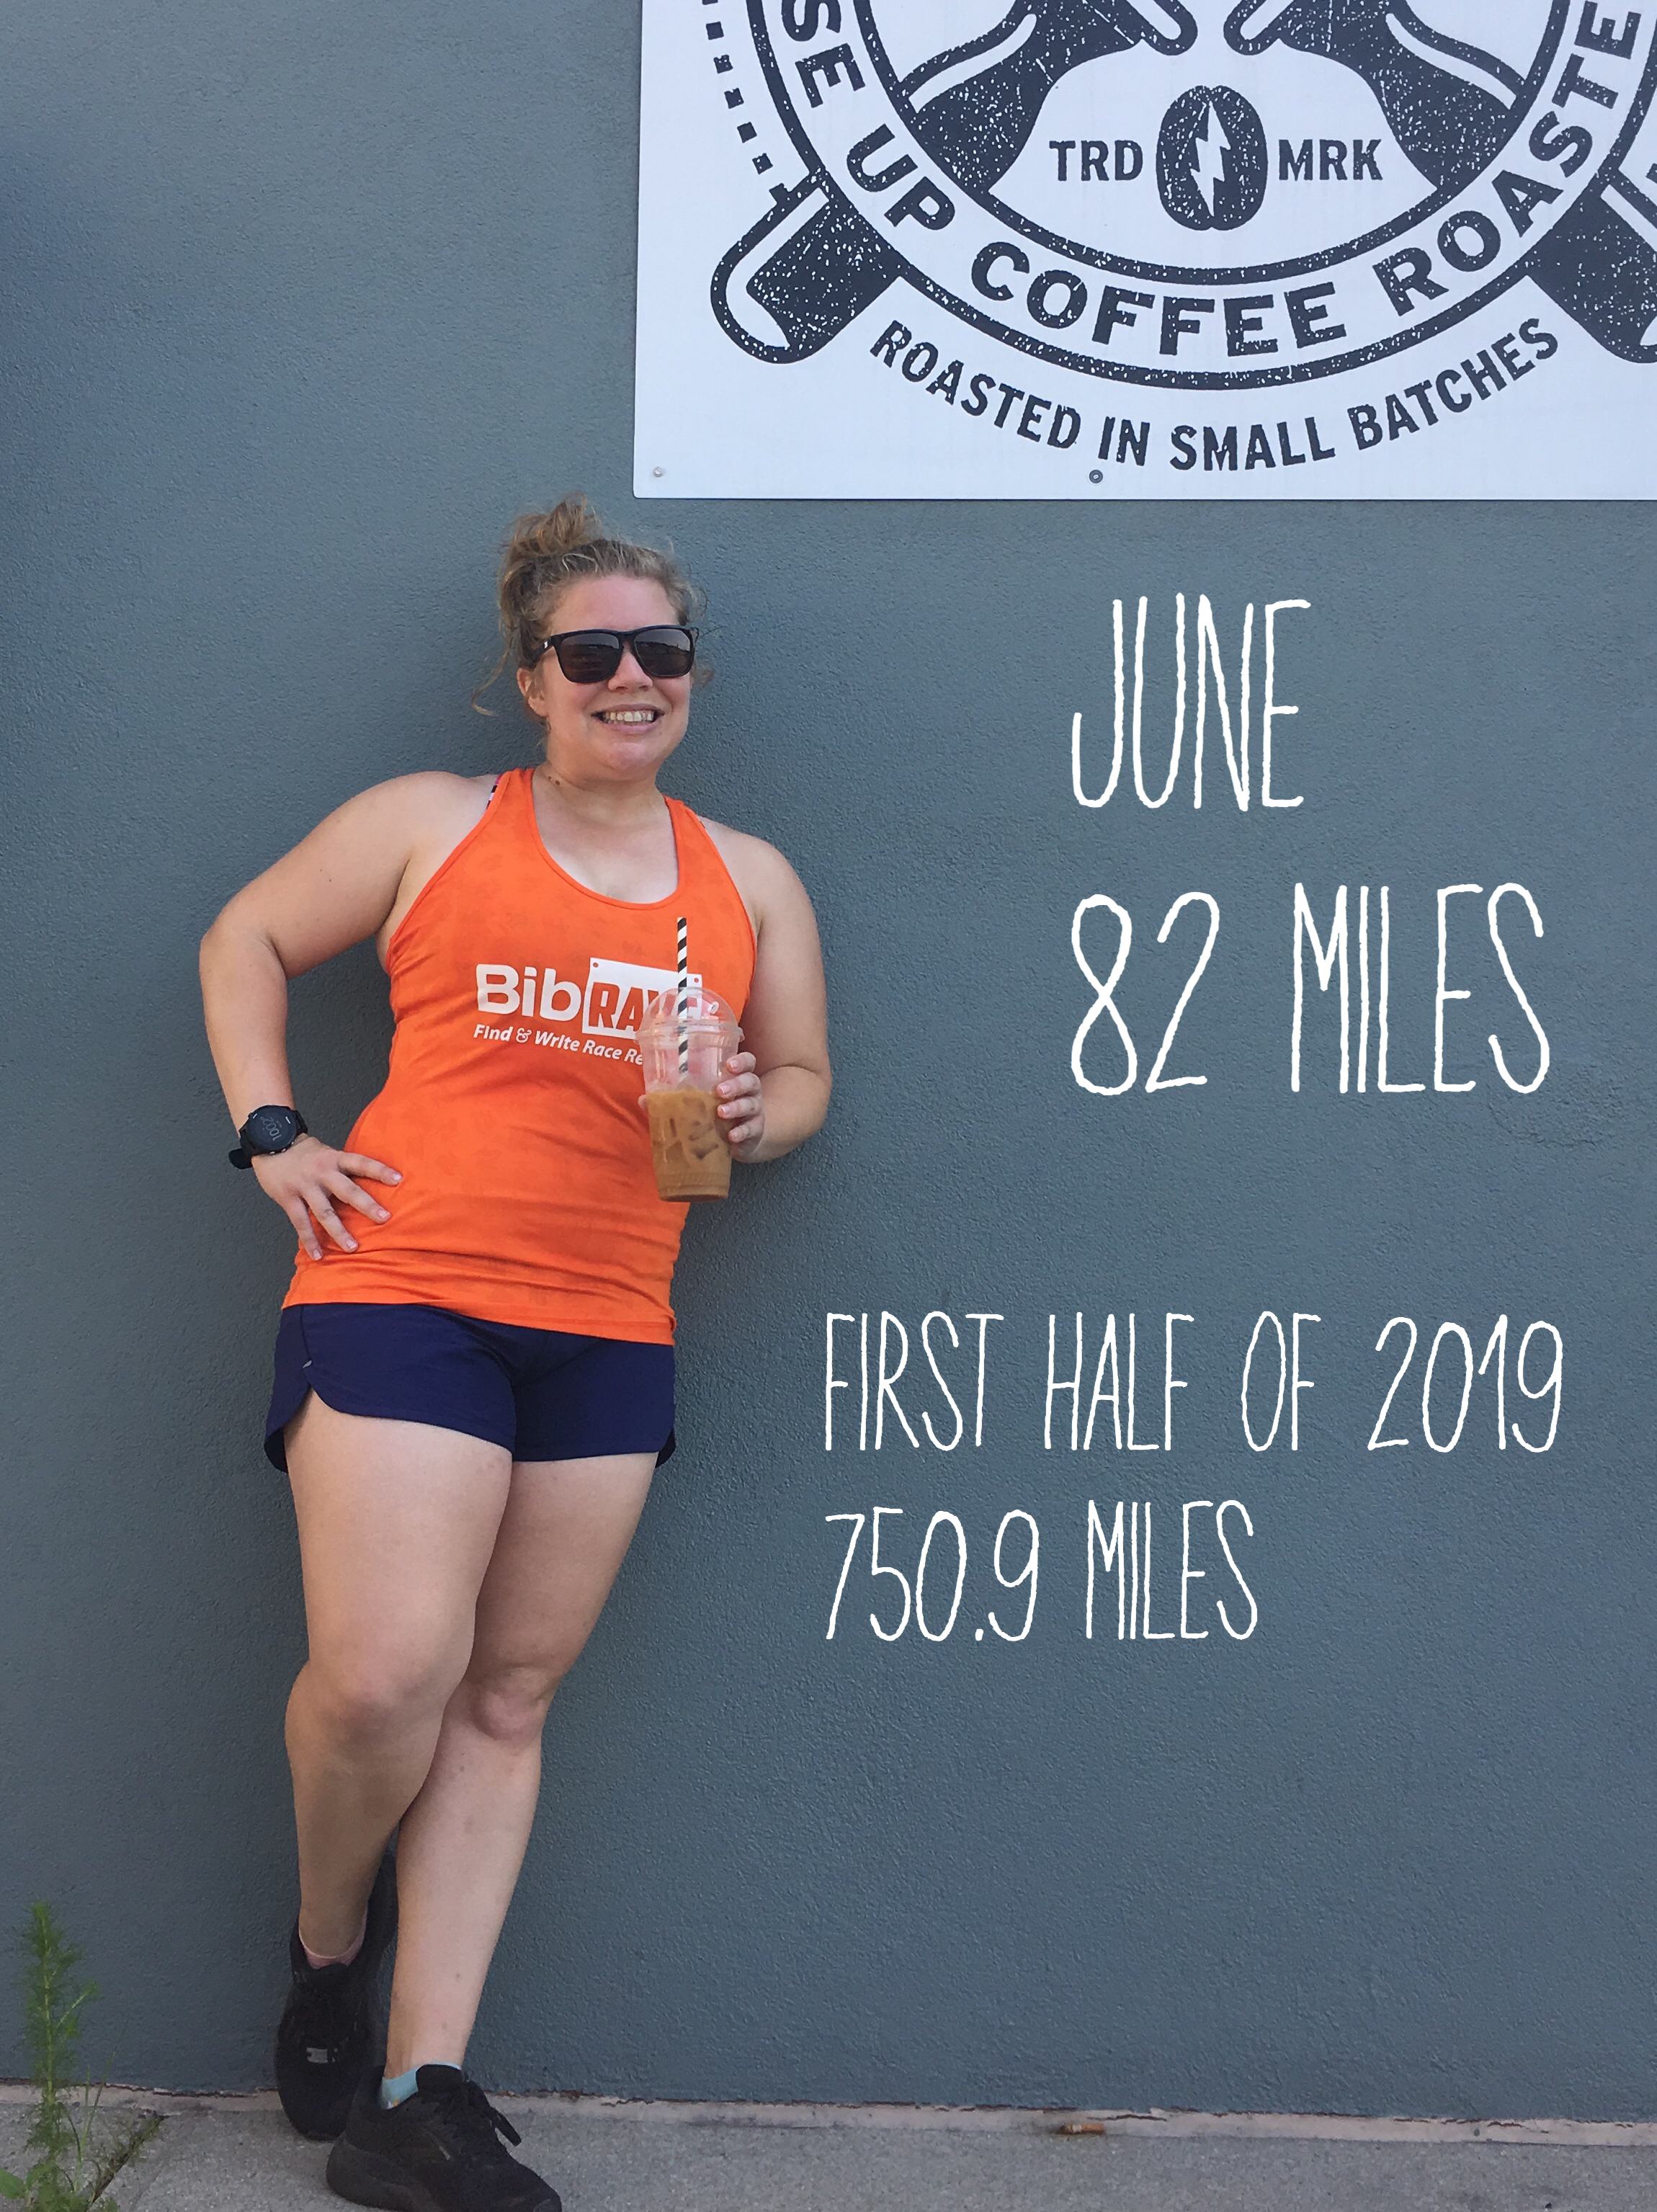 Vanessa Junkin stands outside of Rise Up Coffee. Text on photo reads: June 82 Miles; First Half of 2019: 750.9 Miles